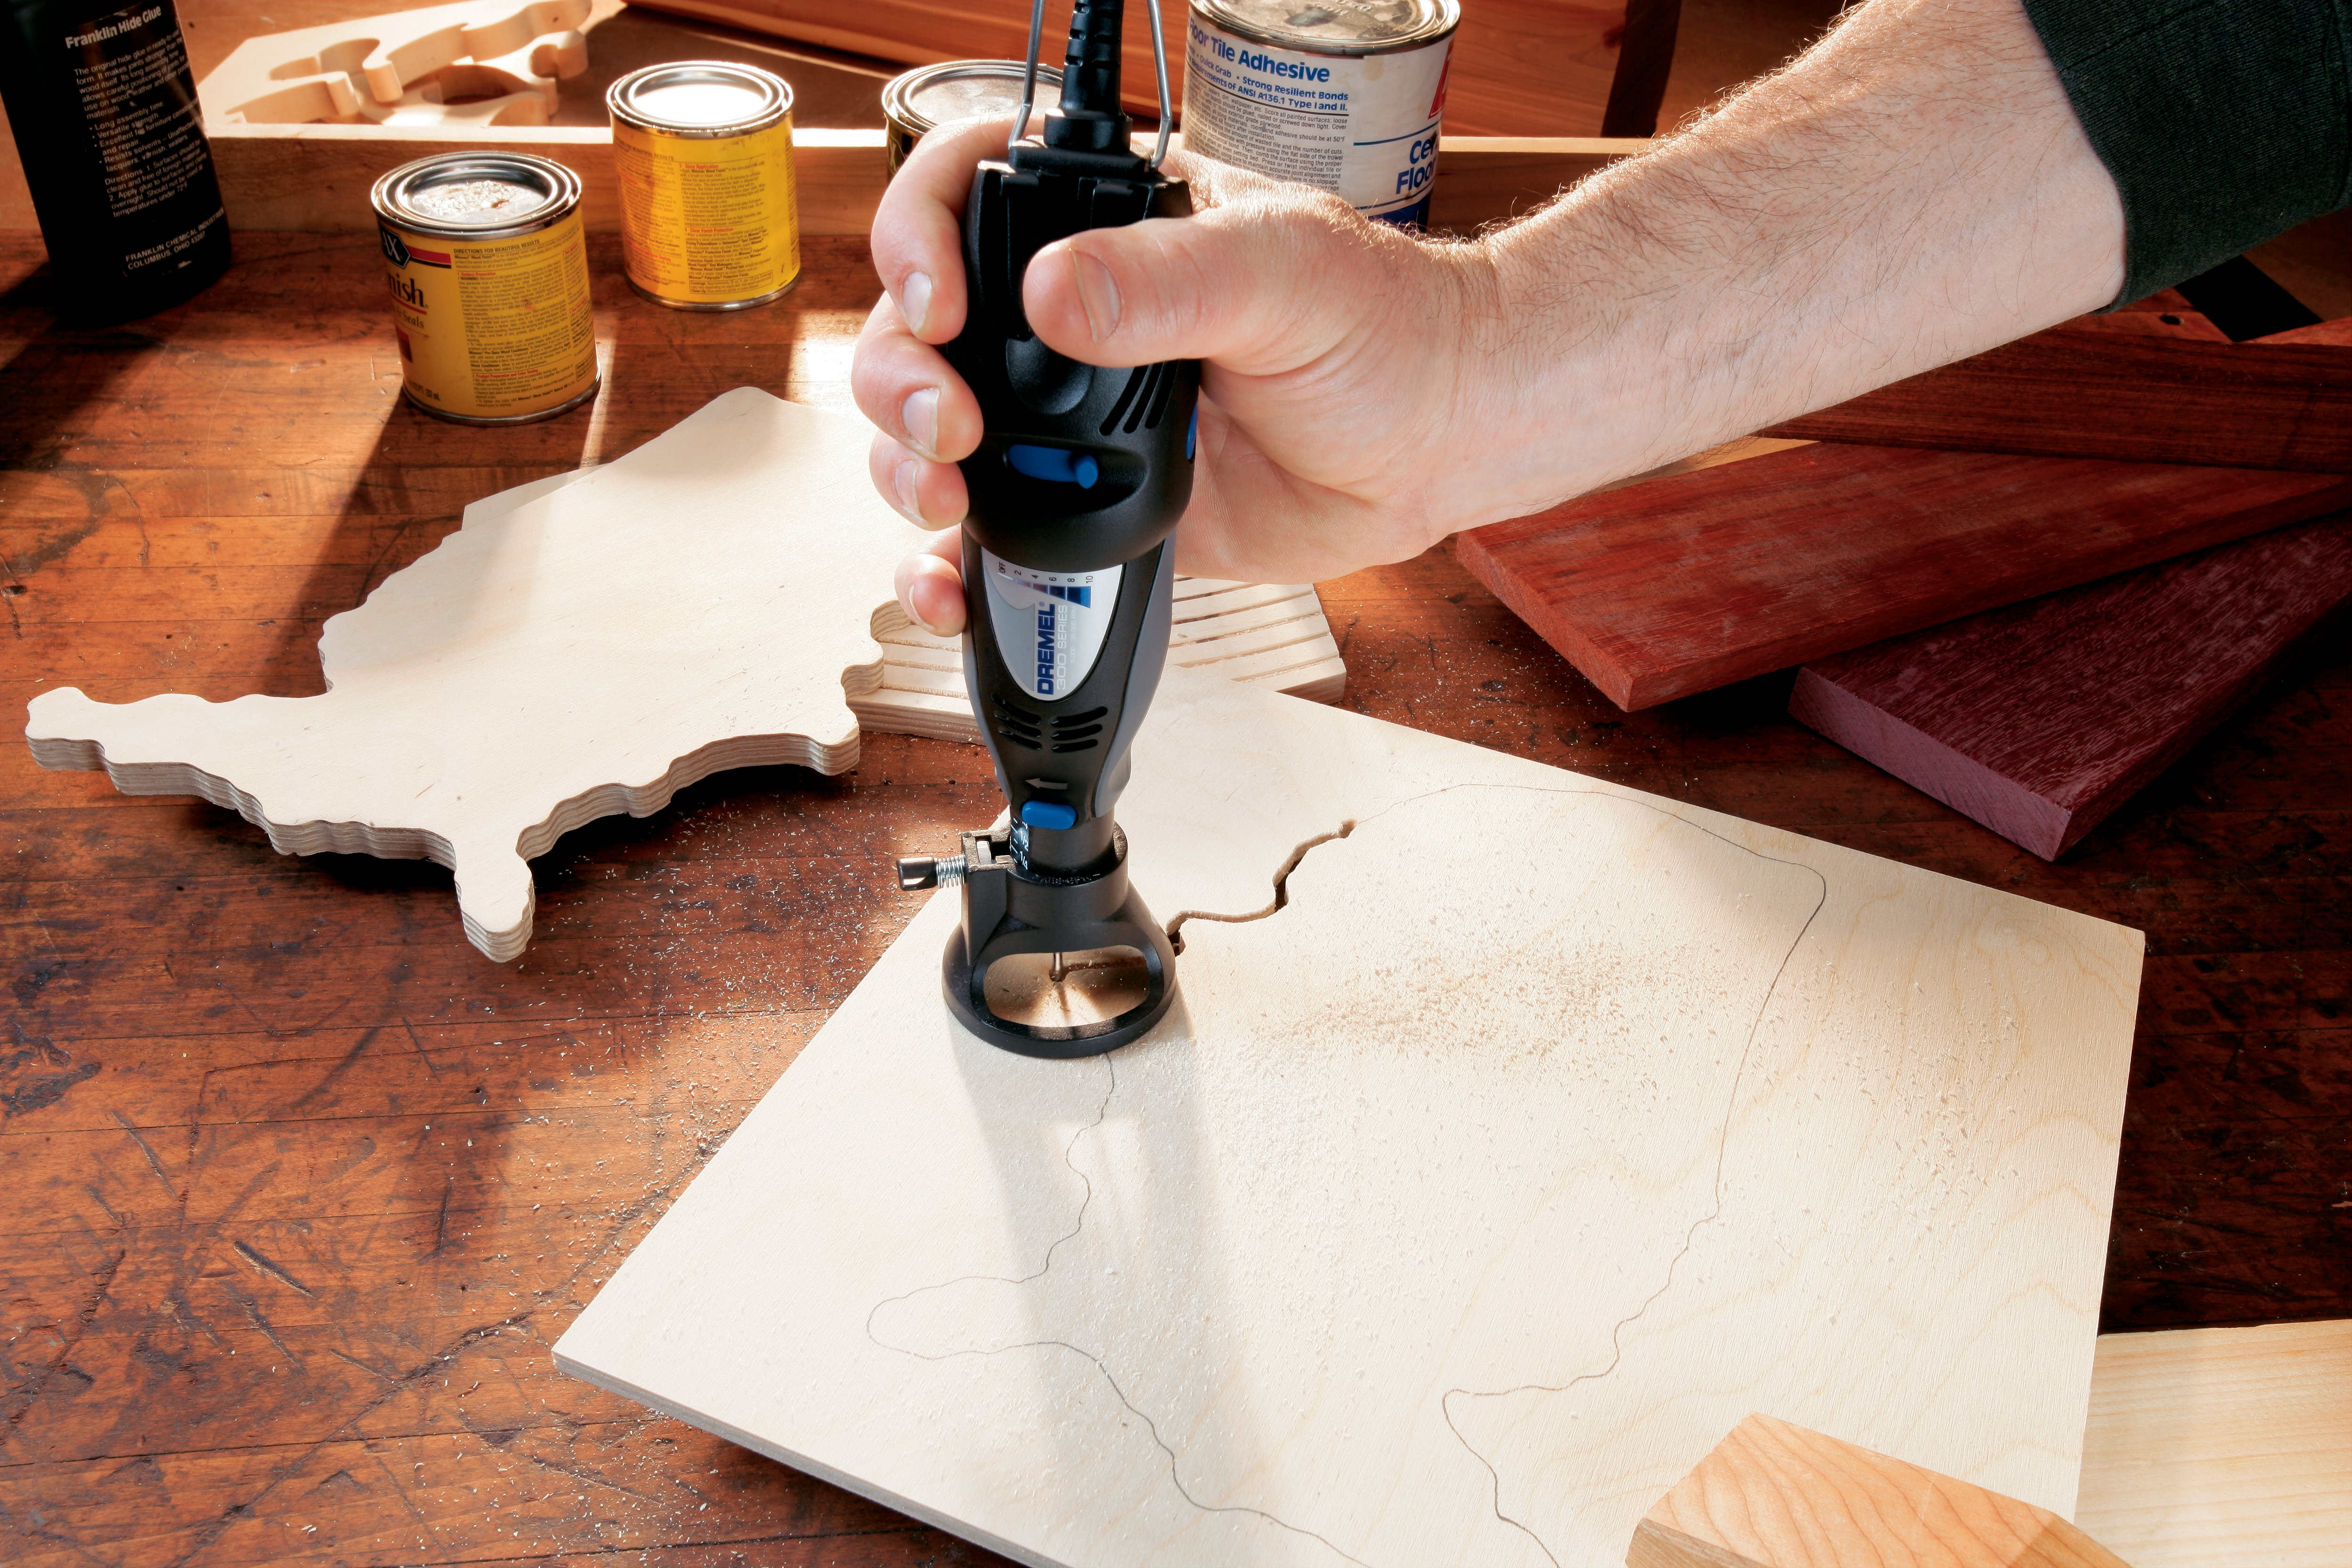 Craft Ideas With Rotary Tool